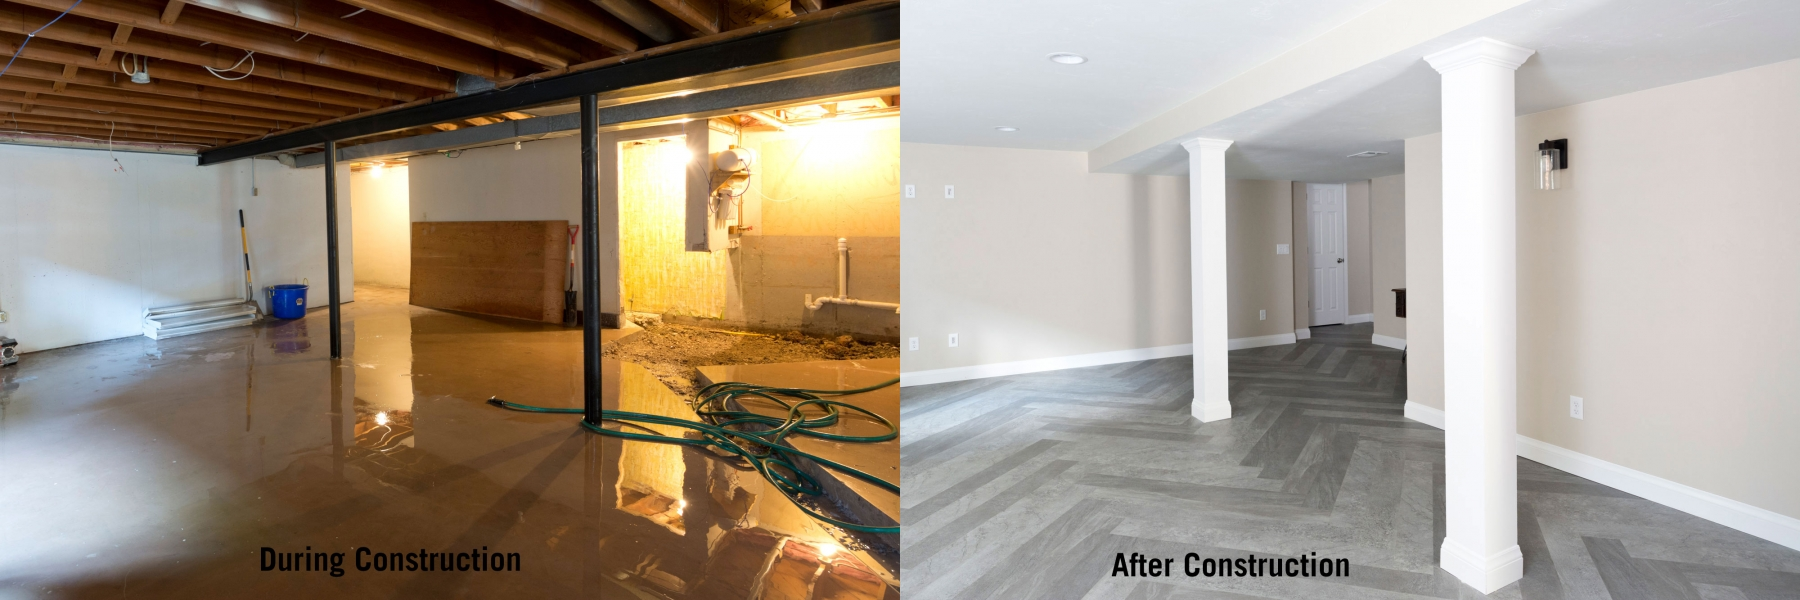 Finishing Or Remodeling Basement Construction Services In Green Bay Wi